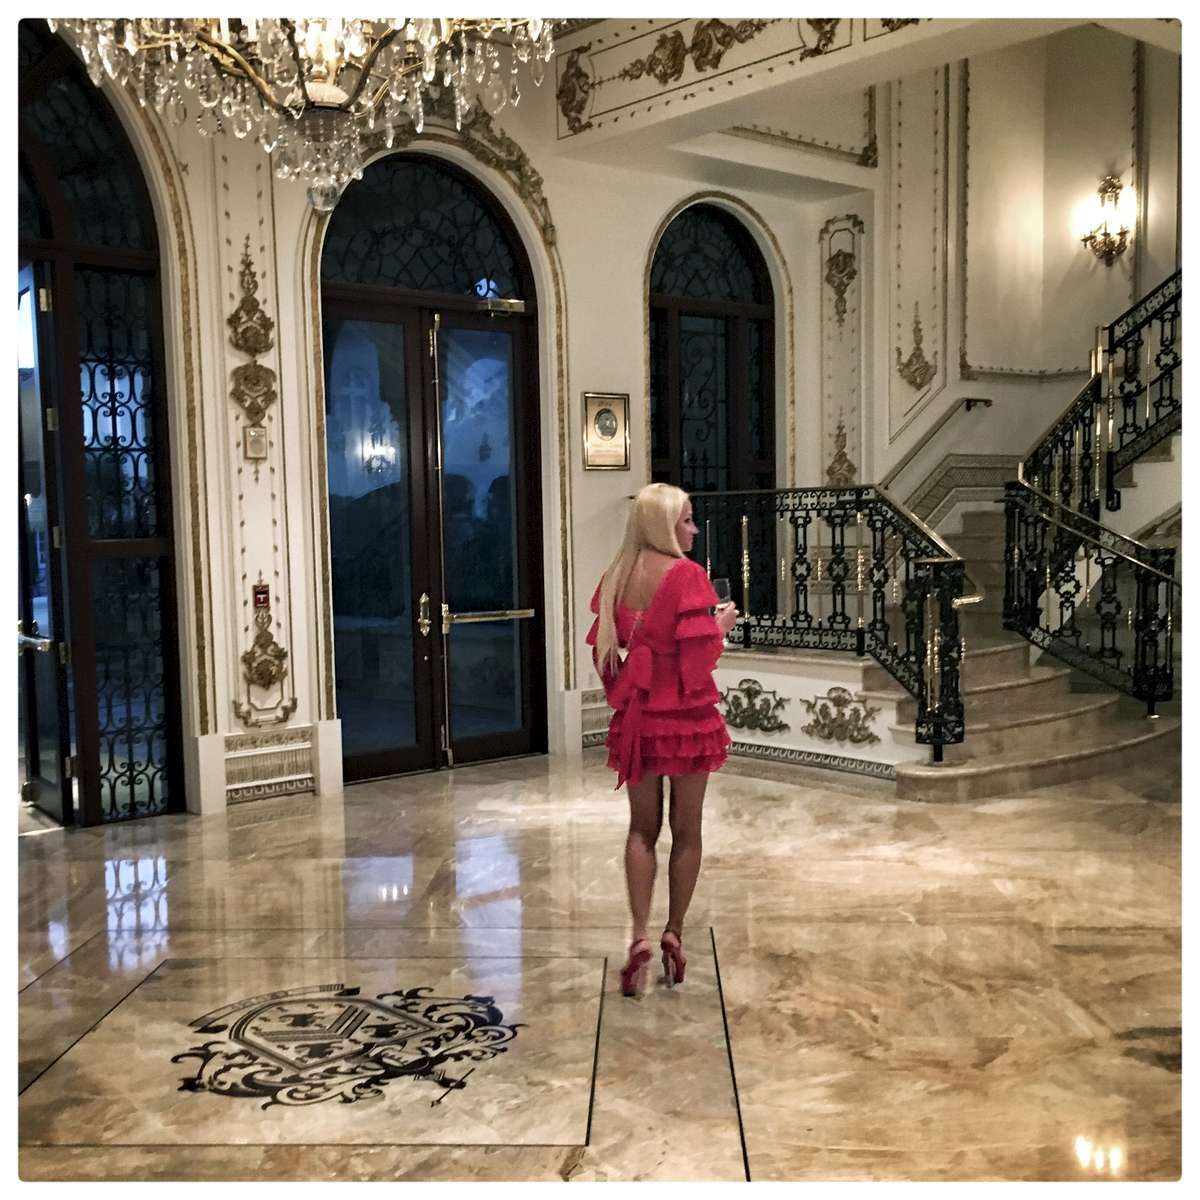 A supporter arrives in the Donald J. Trump Ballroom at the Mar-A-Lago Club' in Palm Beach,  where Republican presidential candidate Donald Trump spoke after the Florida primary.